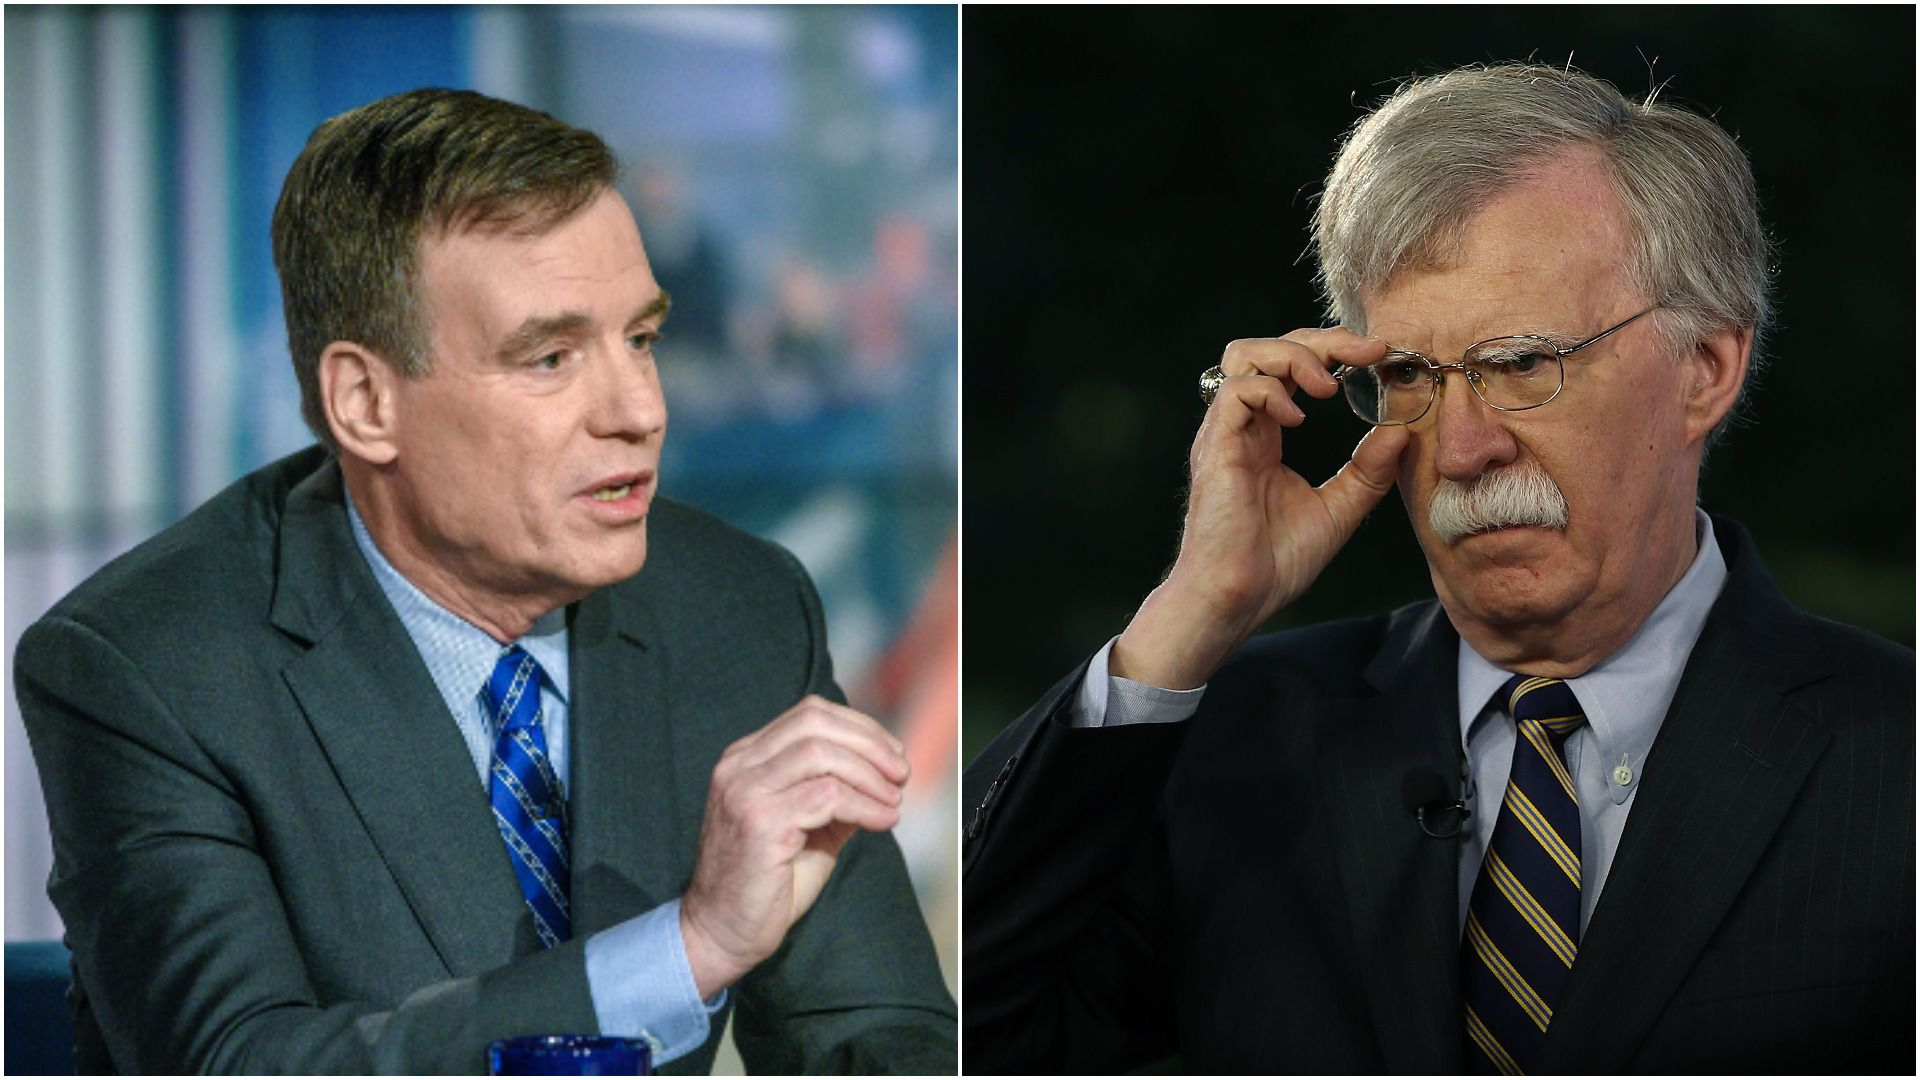 Warner and Bolton face each other in a photo collage